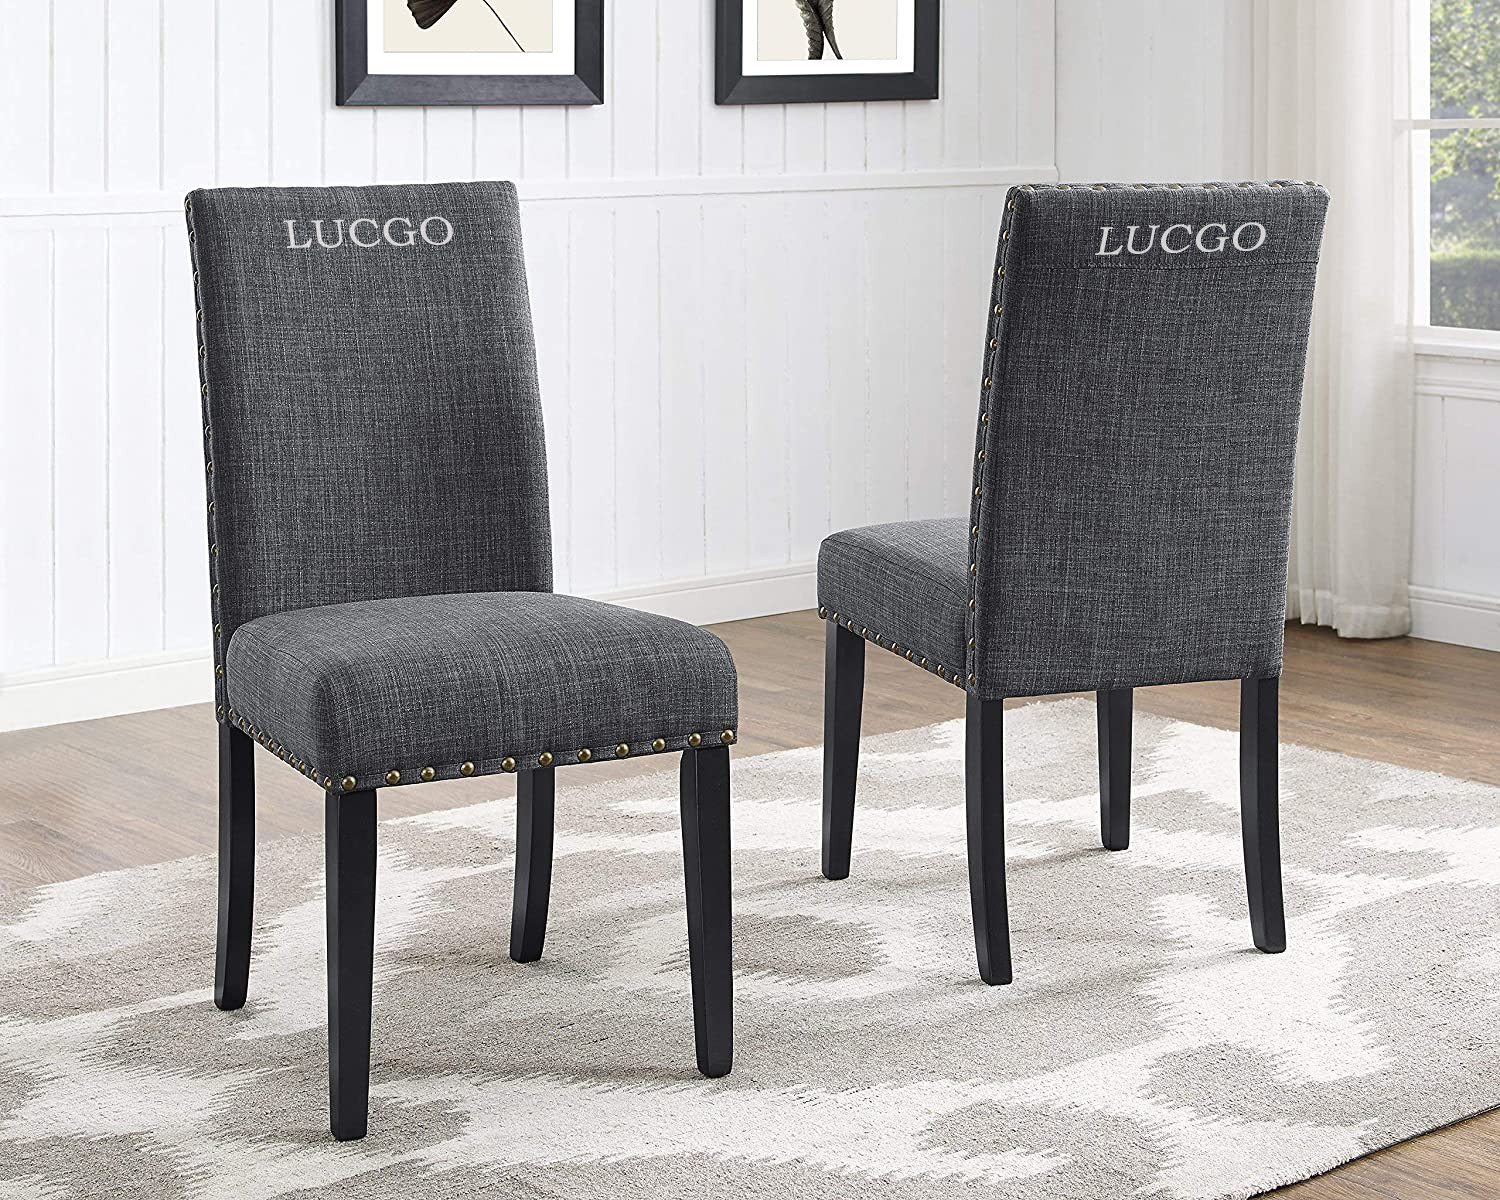 Lucgo Furniture Biony Gray Fabric Dining Chairs With Nailhead Trim Set Of 2